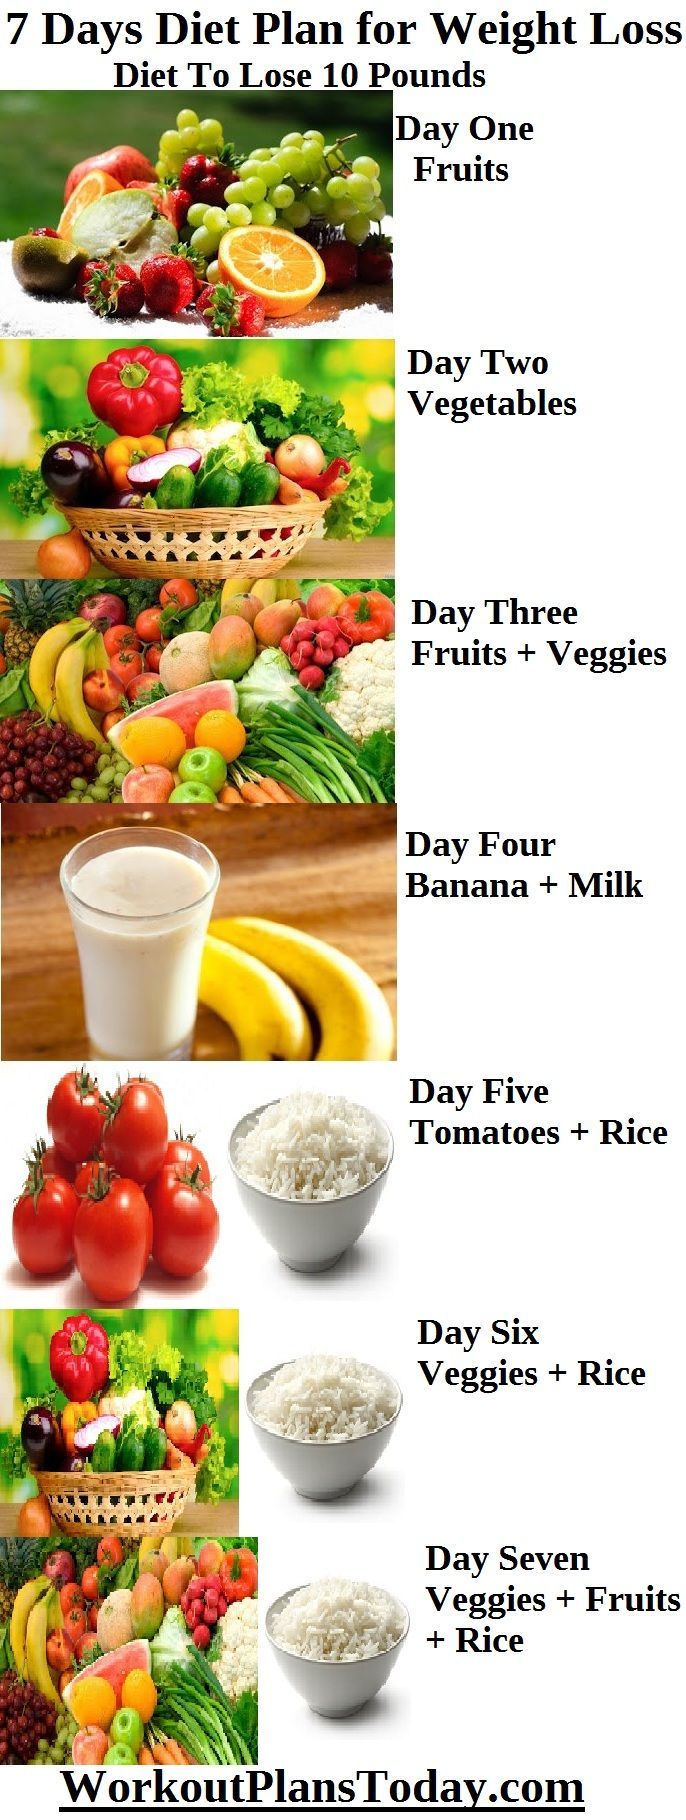 weight loss diet 9 kg for 7 days